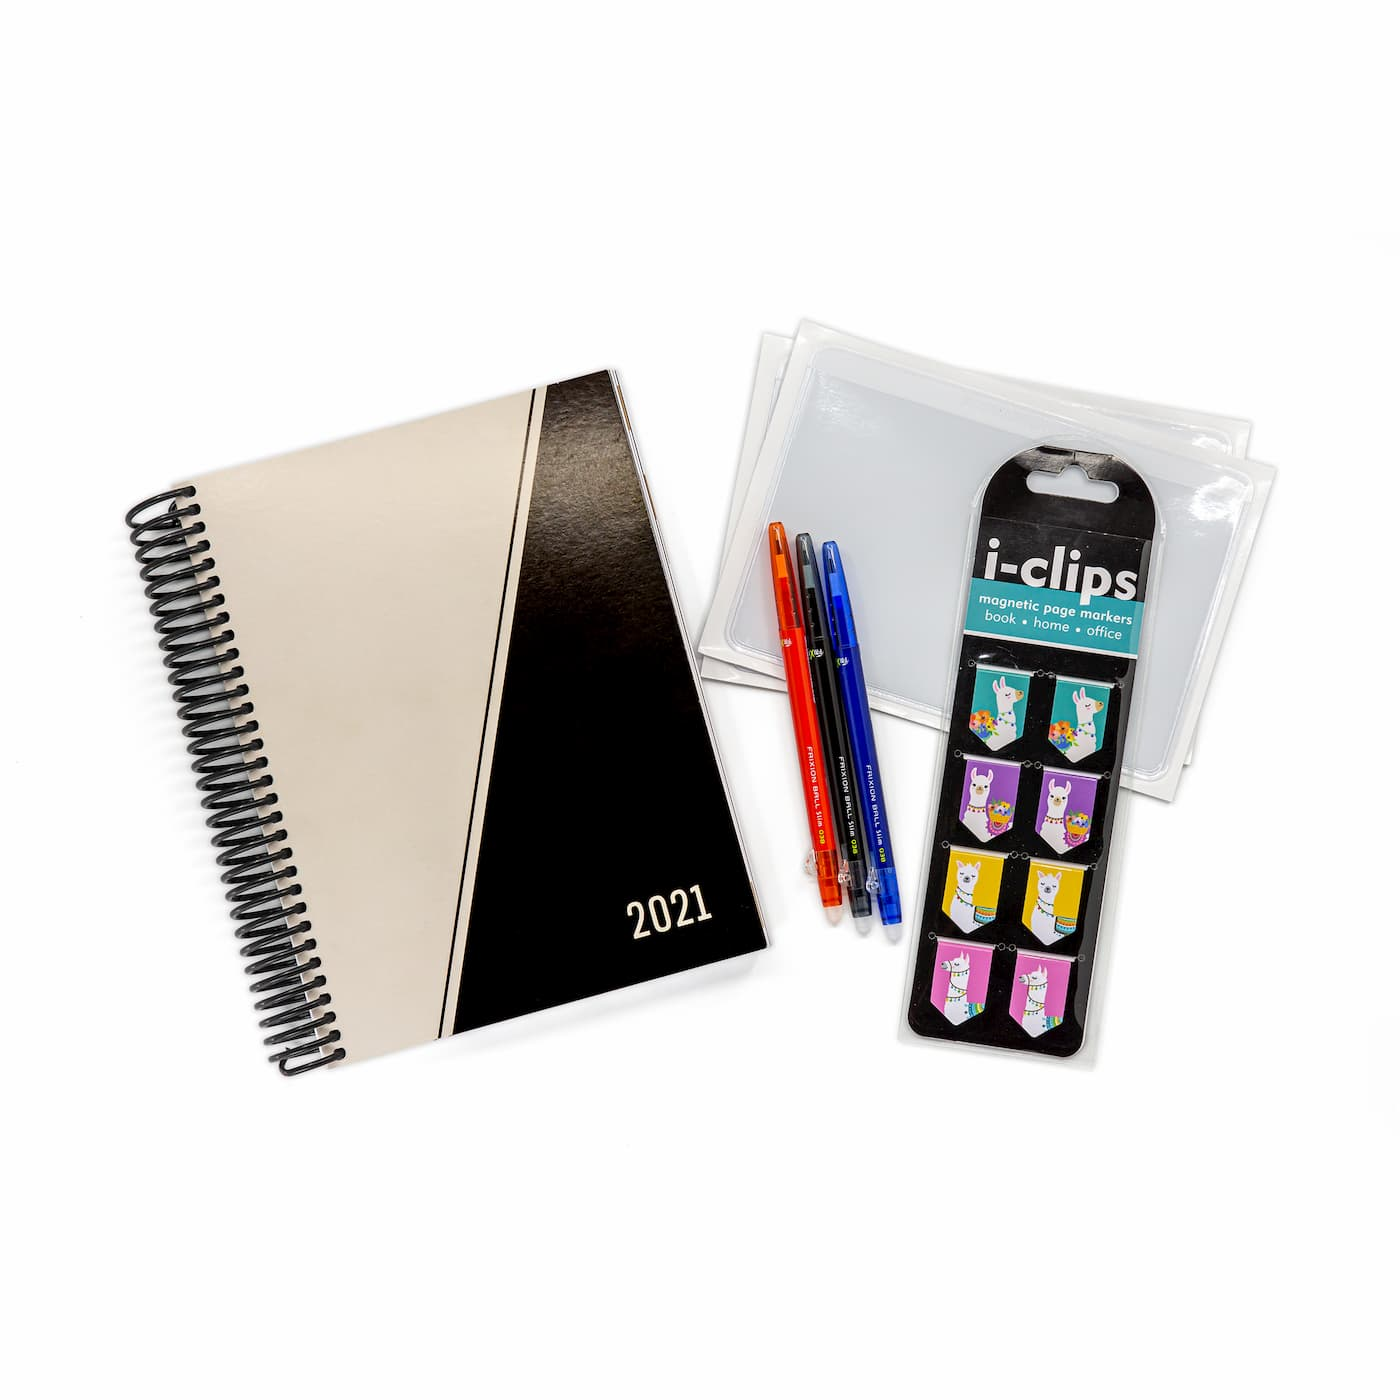 2021 Minimal Weekly Planner with Nerd Kit